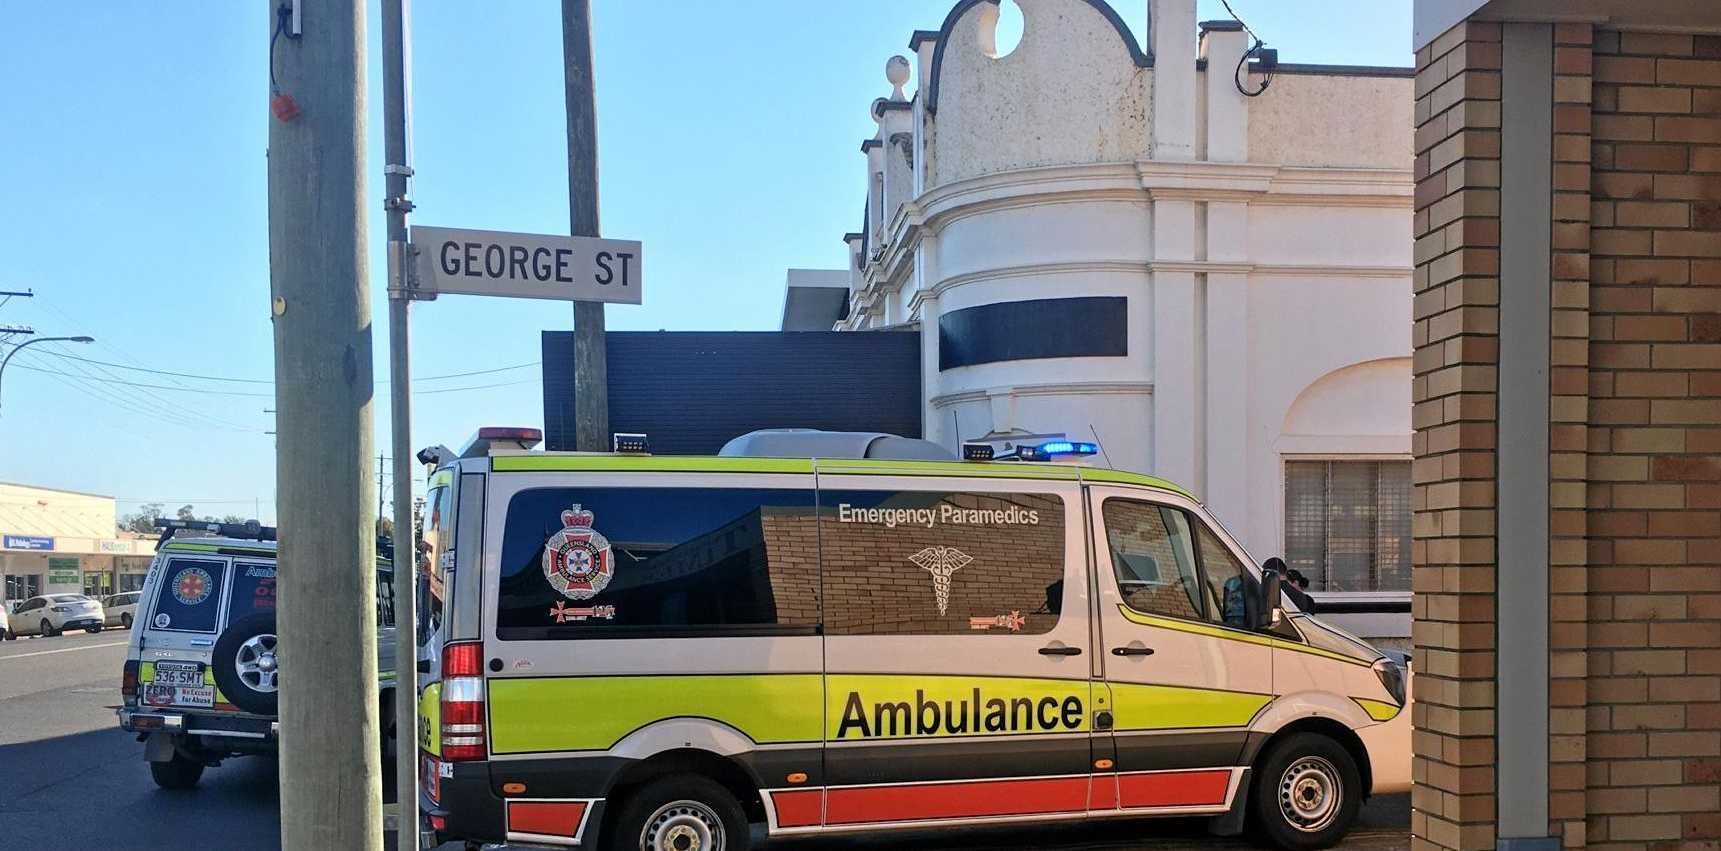 Two Queensland Ambulance Service crews attended the incident on George St, Kingaroy on Monday afternoon.